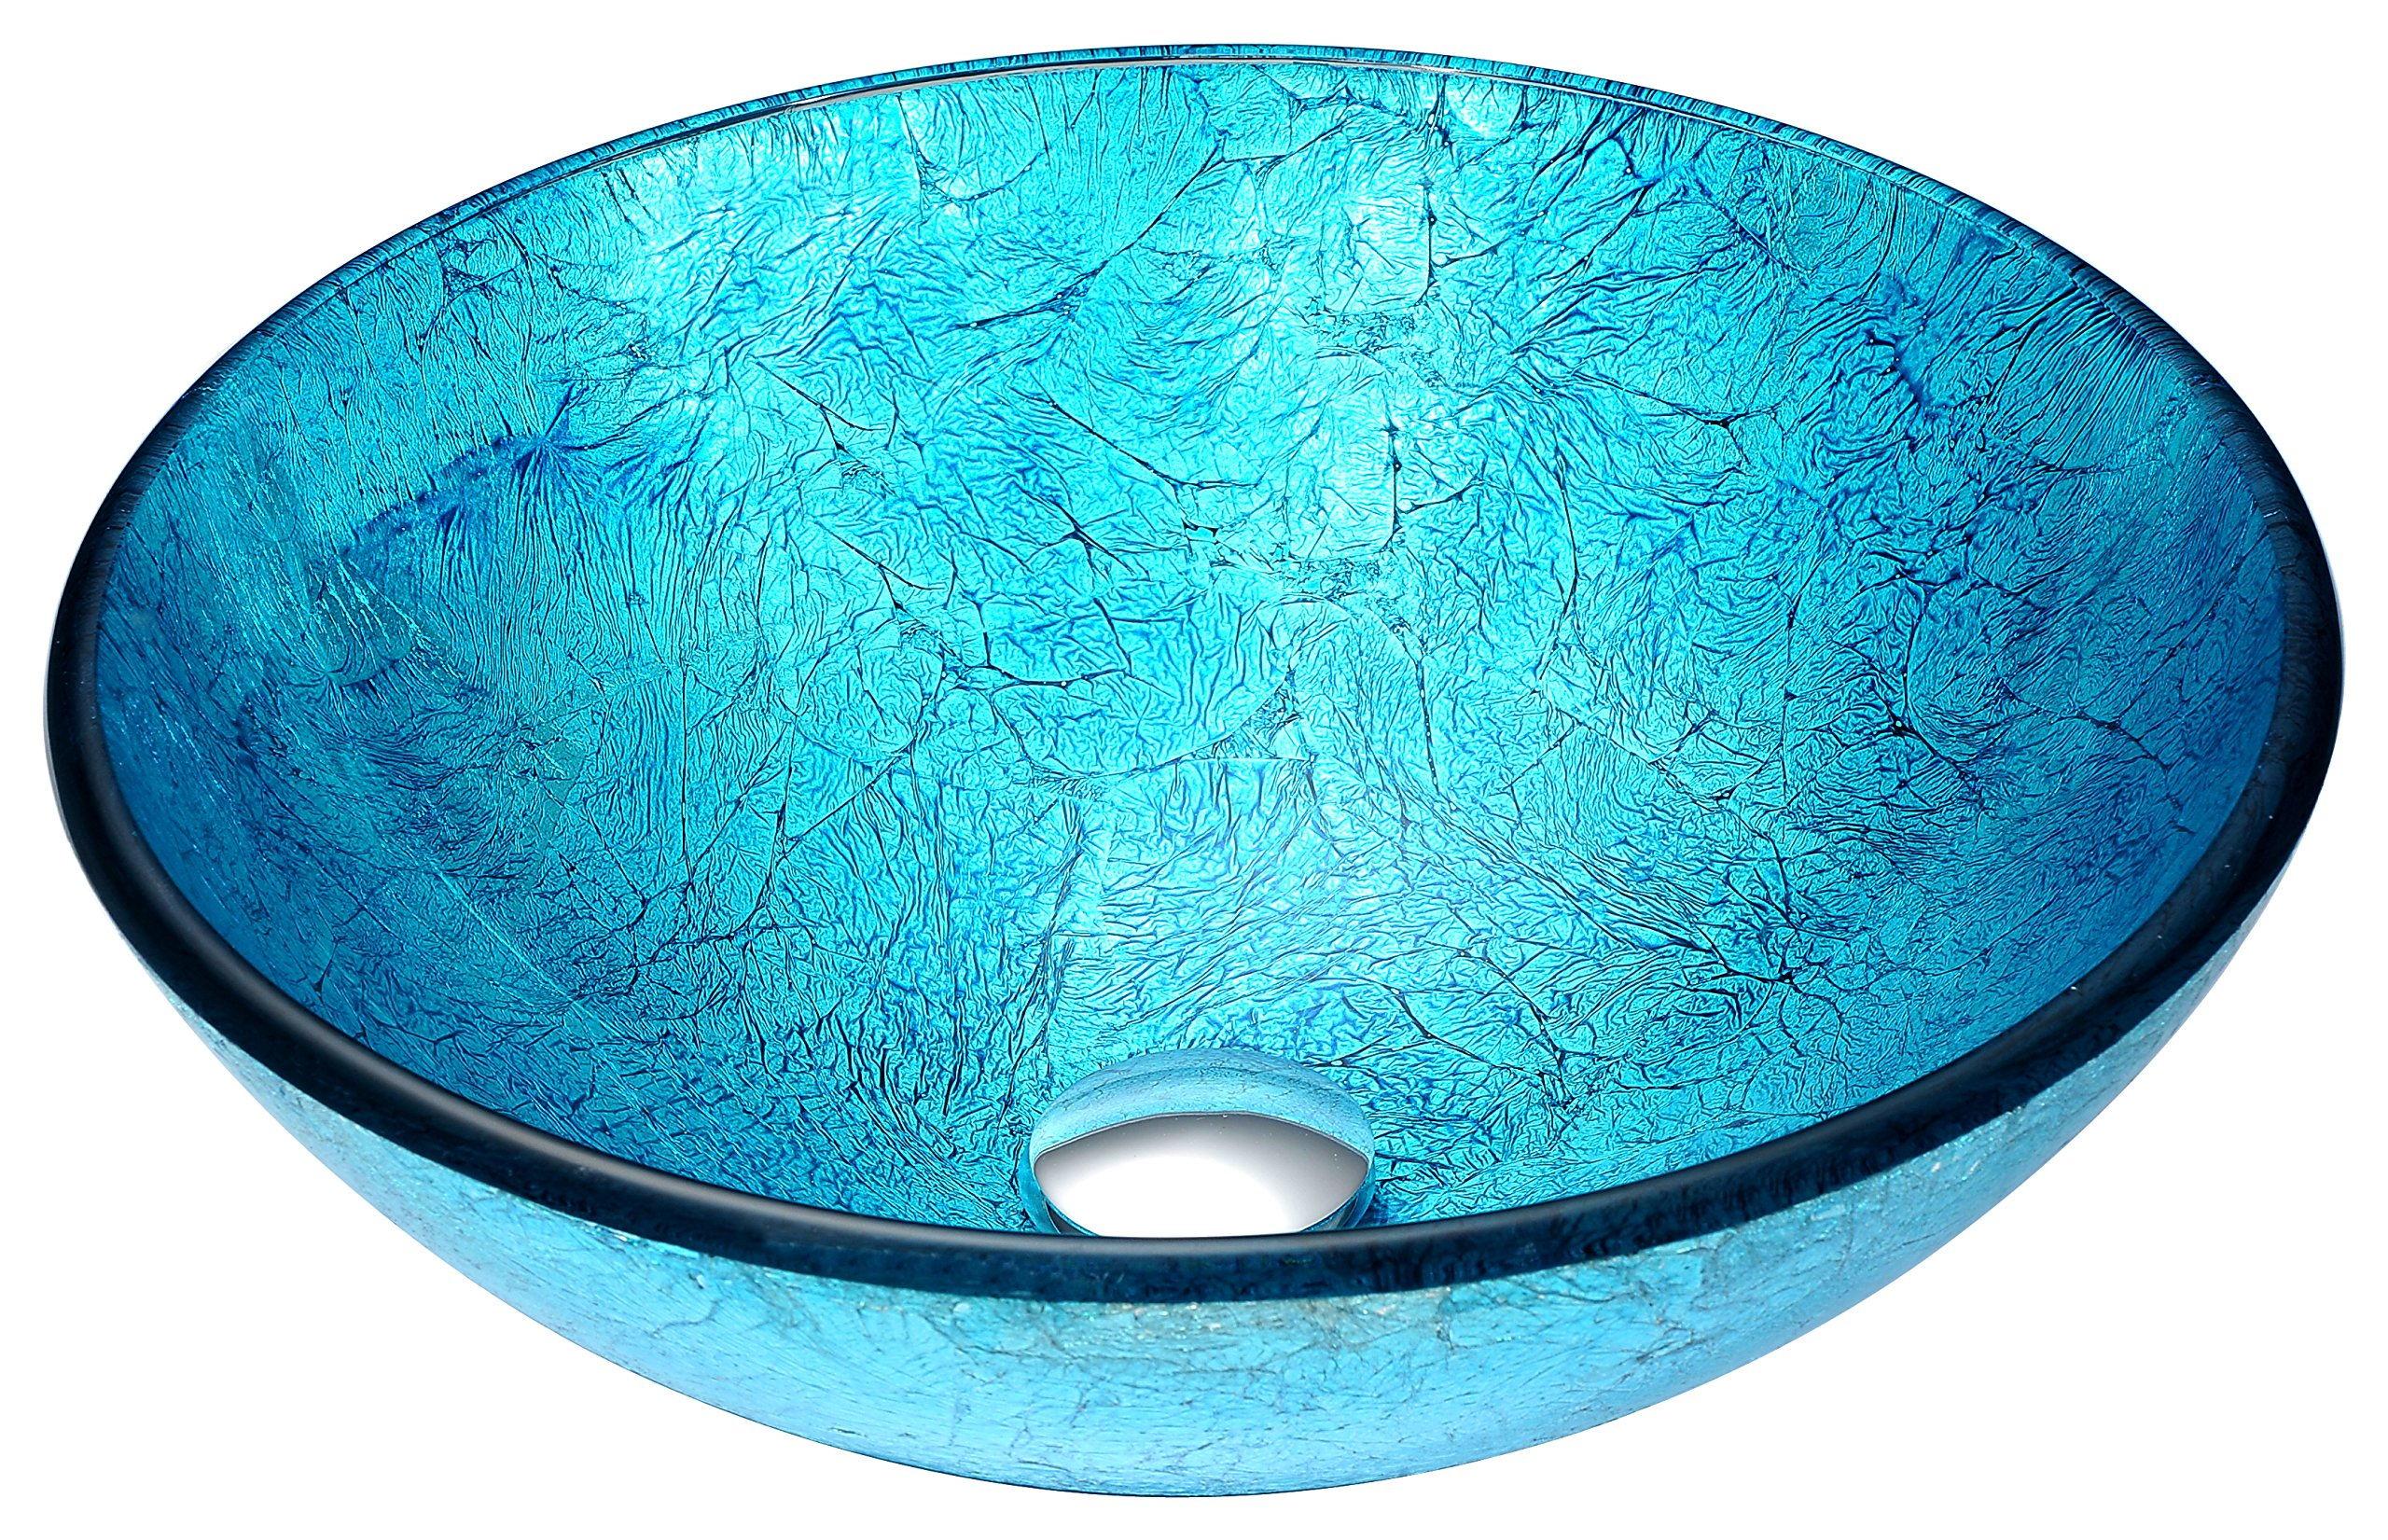 Tempered Glass Vessel Sink - Blue Ice - Accent Series LS-AZ047 - ANZZI by ANZZI